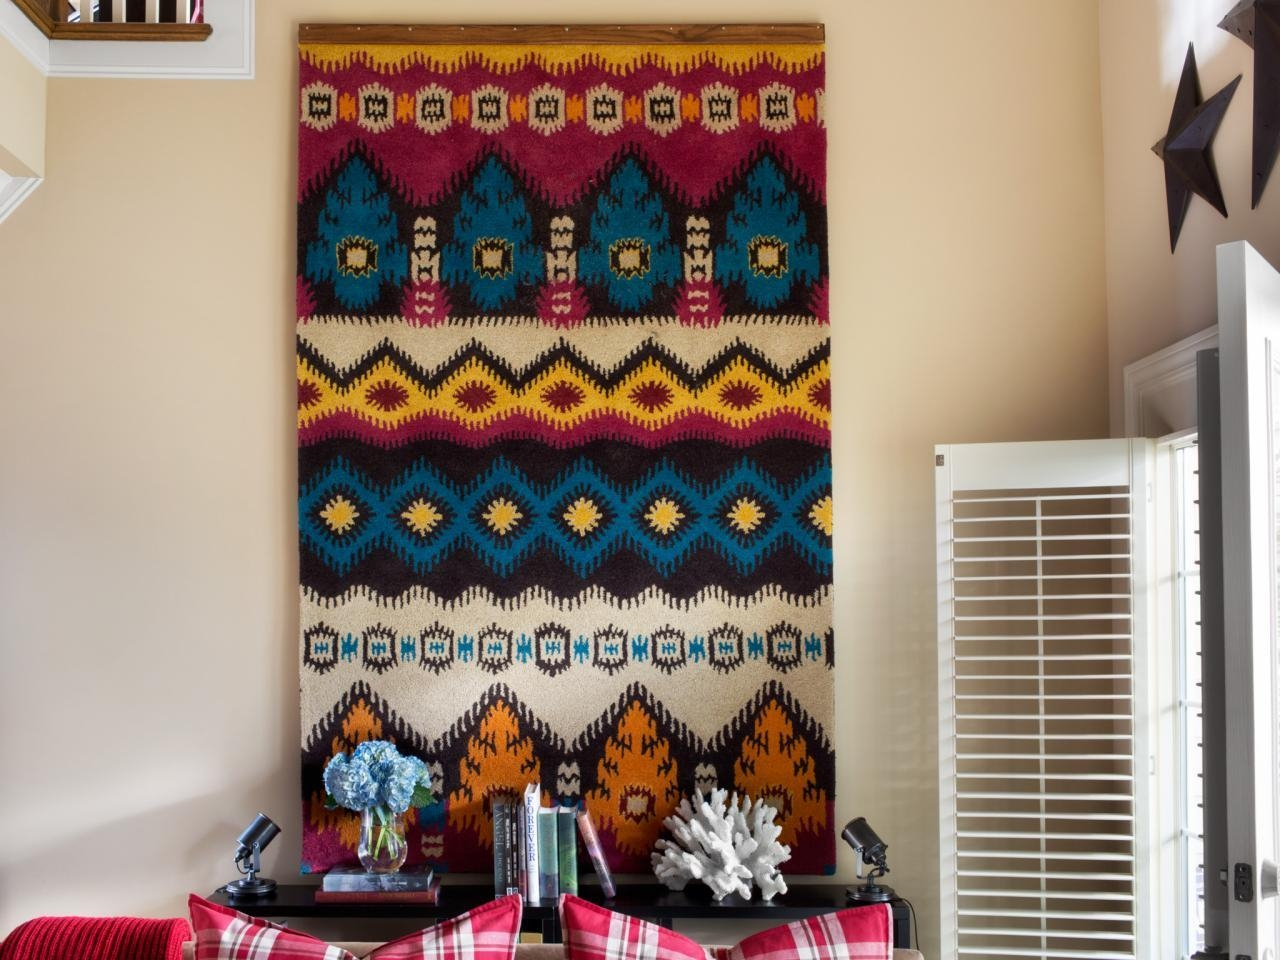 How To Turn A Rug Into A Wall Art Tapestry | Hgtv With Regard To Turn Pictures Into Wall Art (Image 7 of 20)